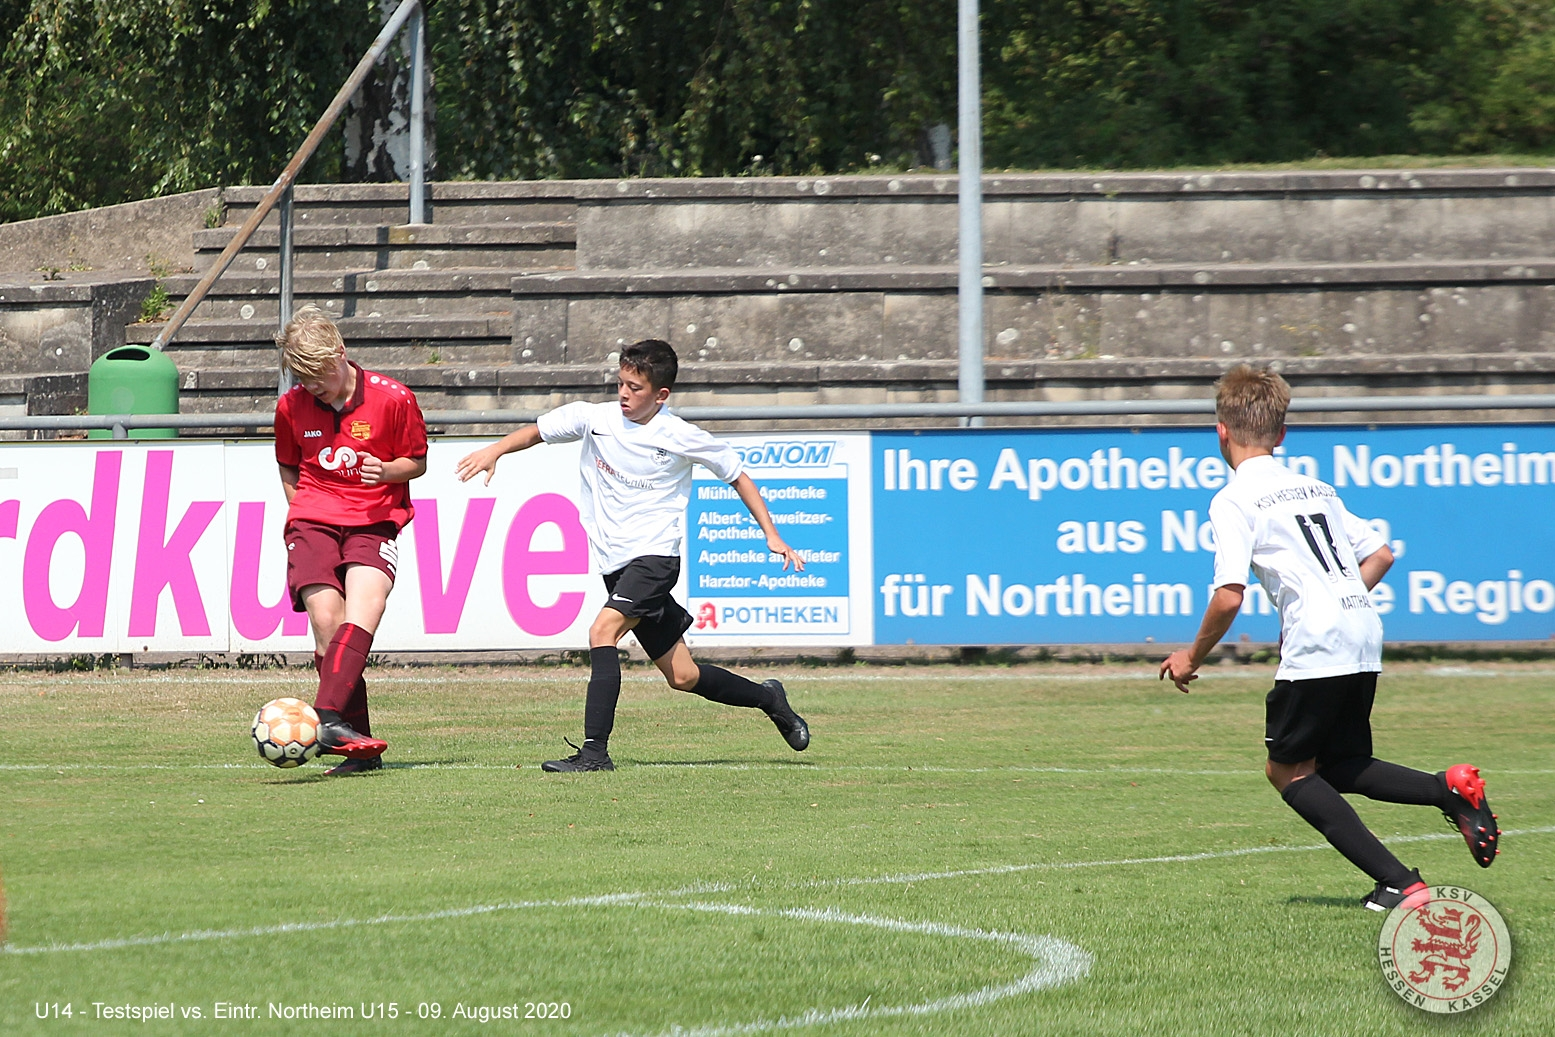 Eintracht Northeim U15 - U14